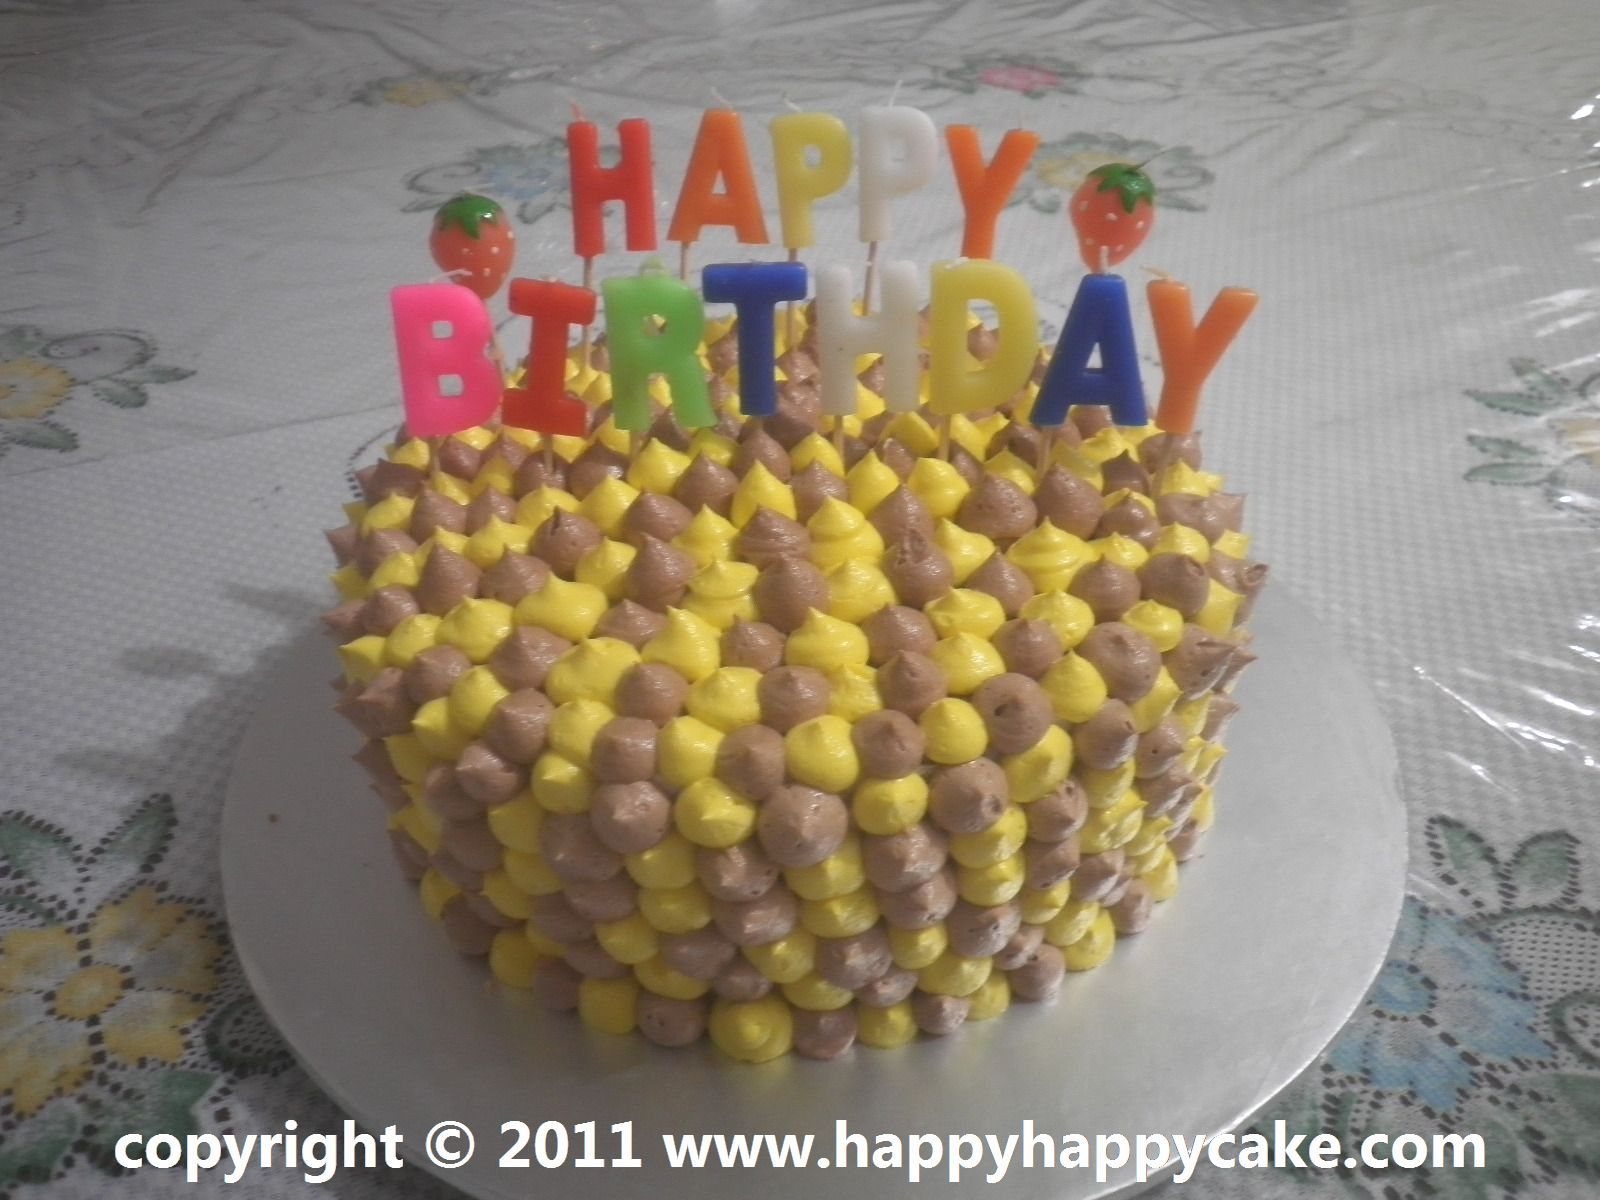 Sponge Cake Decoration Images : Pin Decorating Sponge Cake Cake on Pinterest